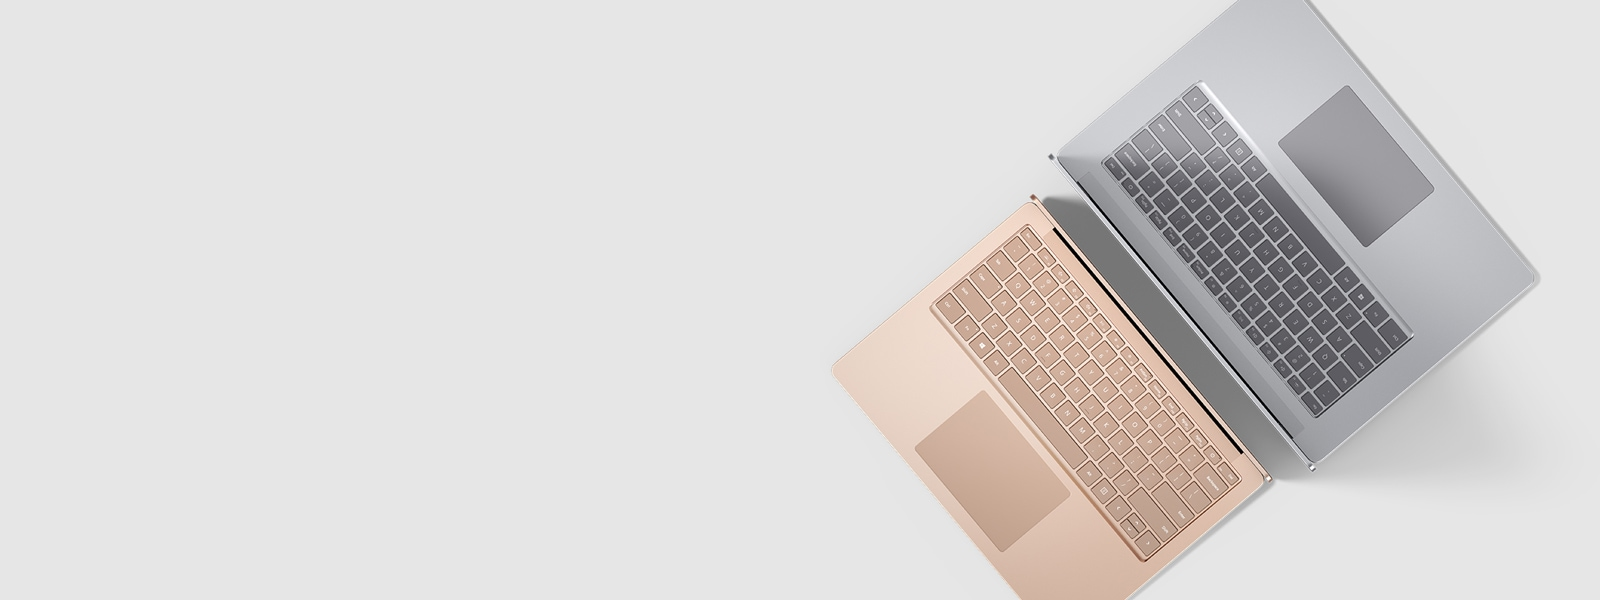 The new Surface Laptop 3 back to back